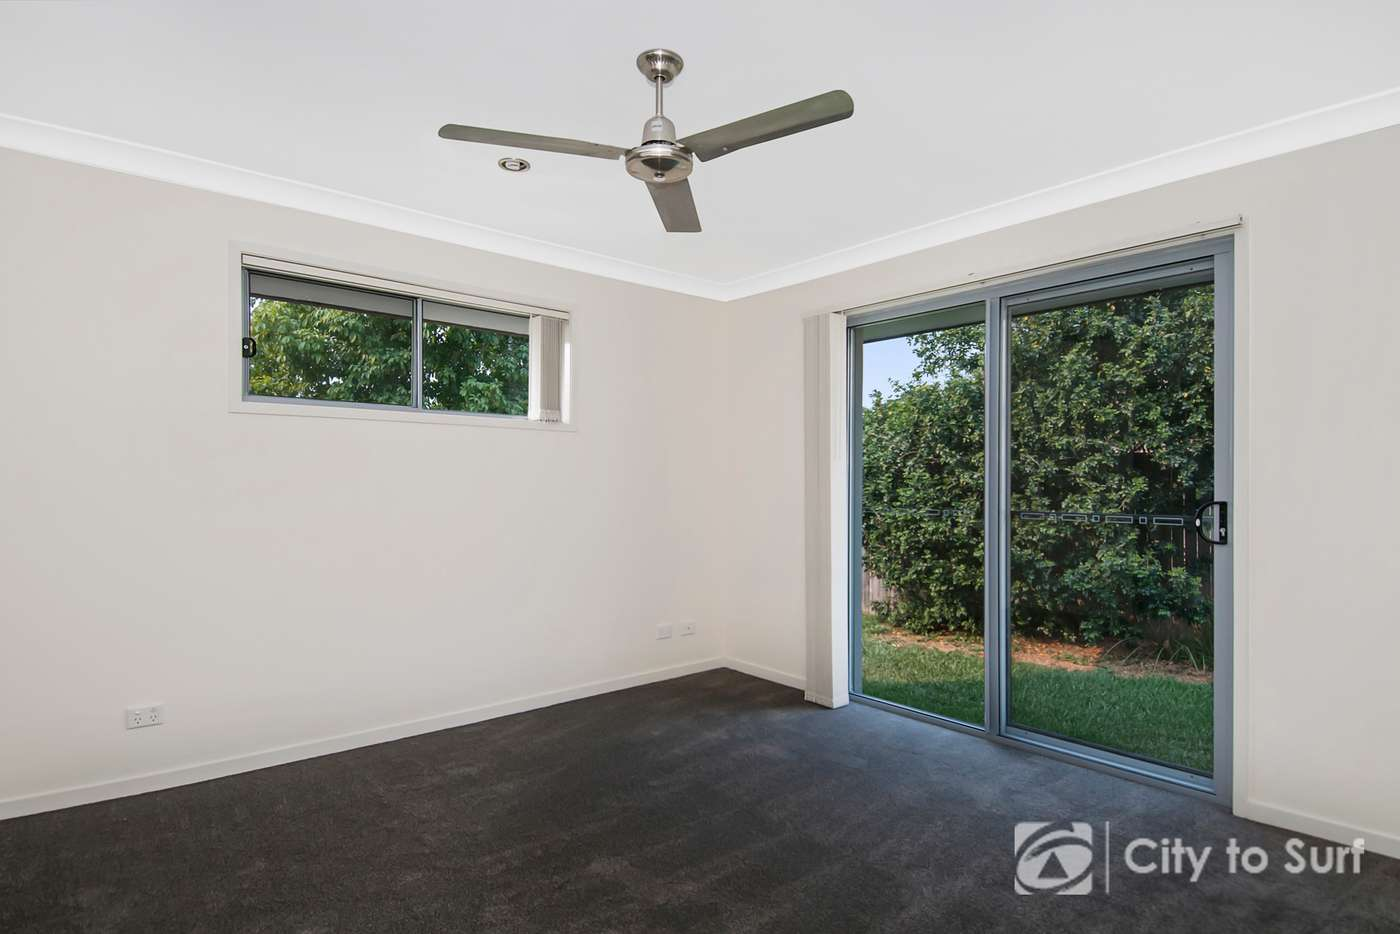 Sixth view of Homely house listing, 17 Goldsborough Parade, Waterford QLD 4133